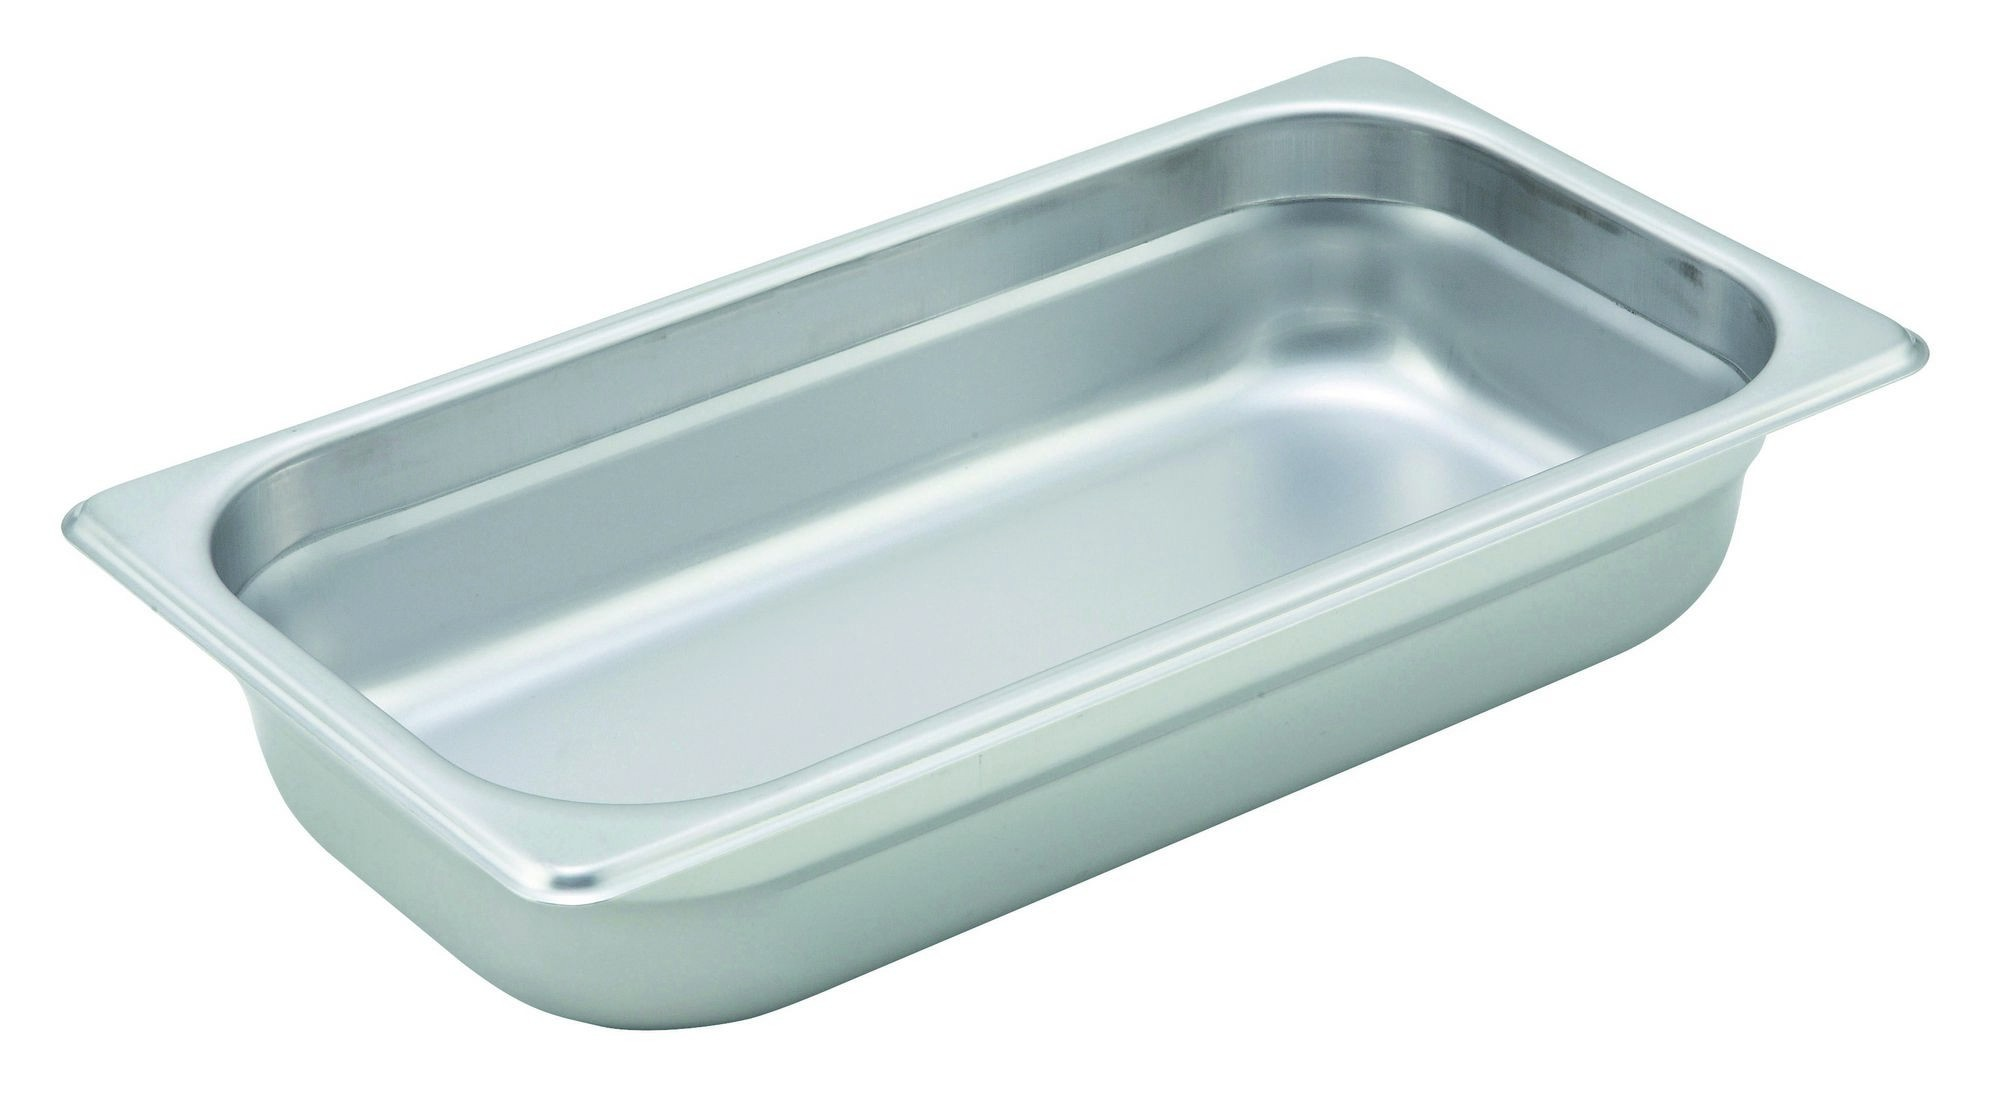 "Winco Spjh-302 1/3 Size Anti-Jam 22 Gauge Steam Table Pan 2-1/2"" Deep"